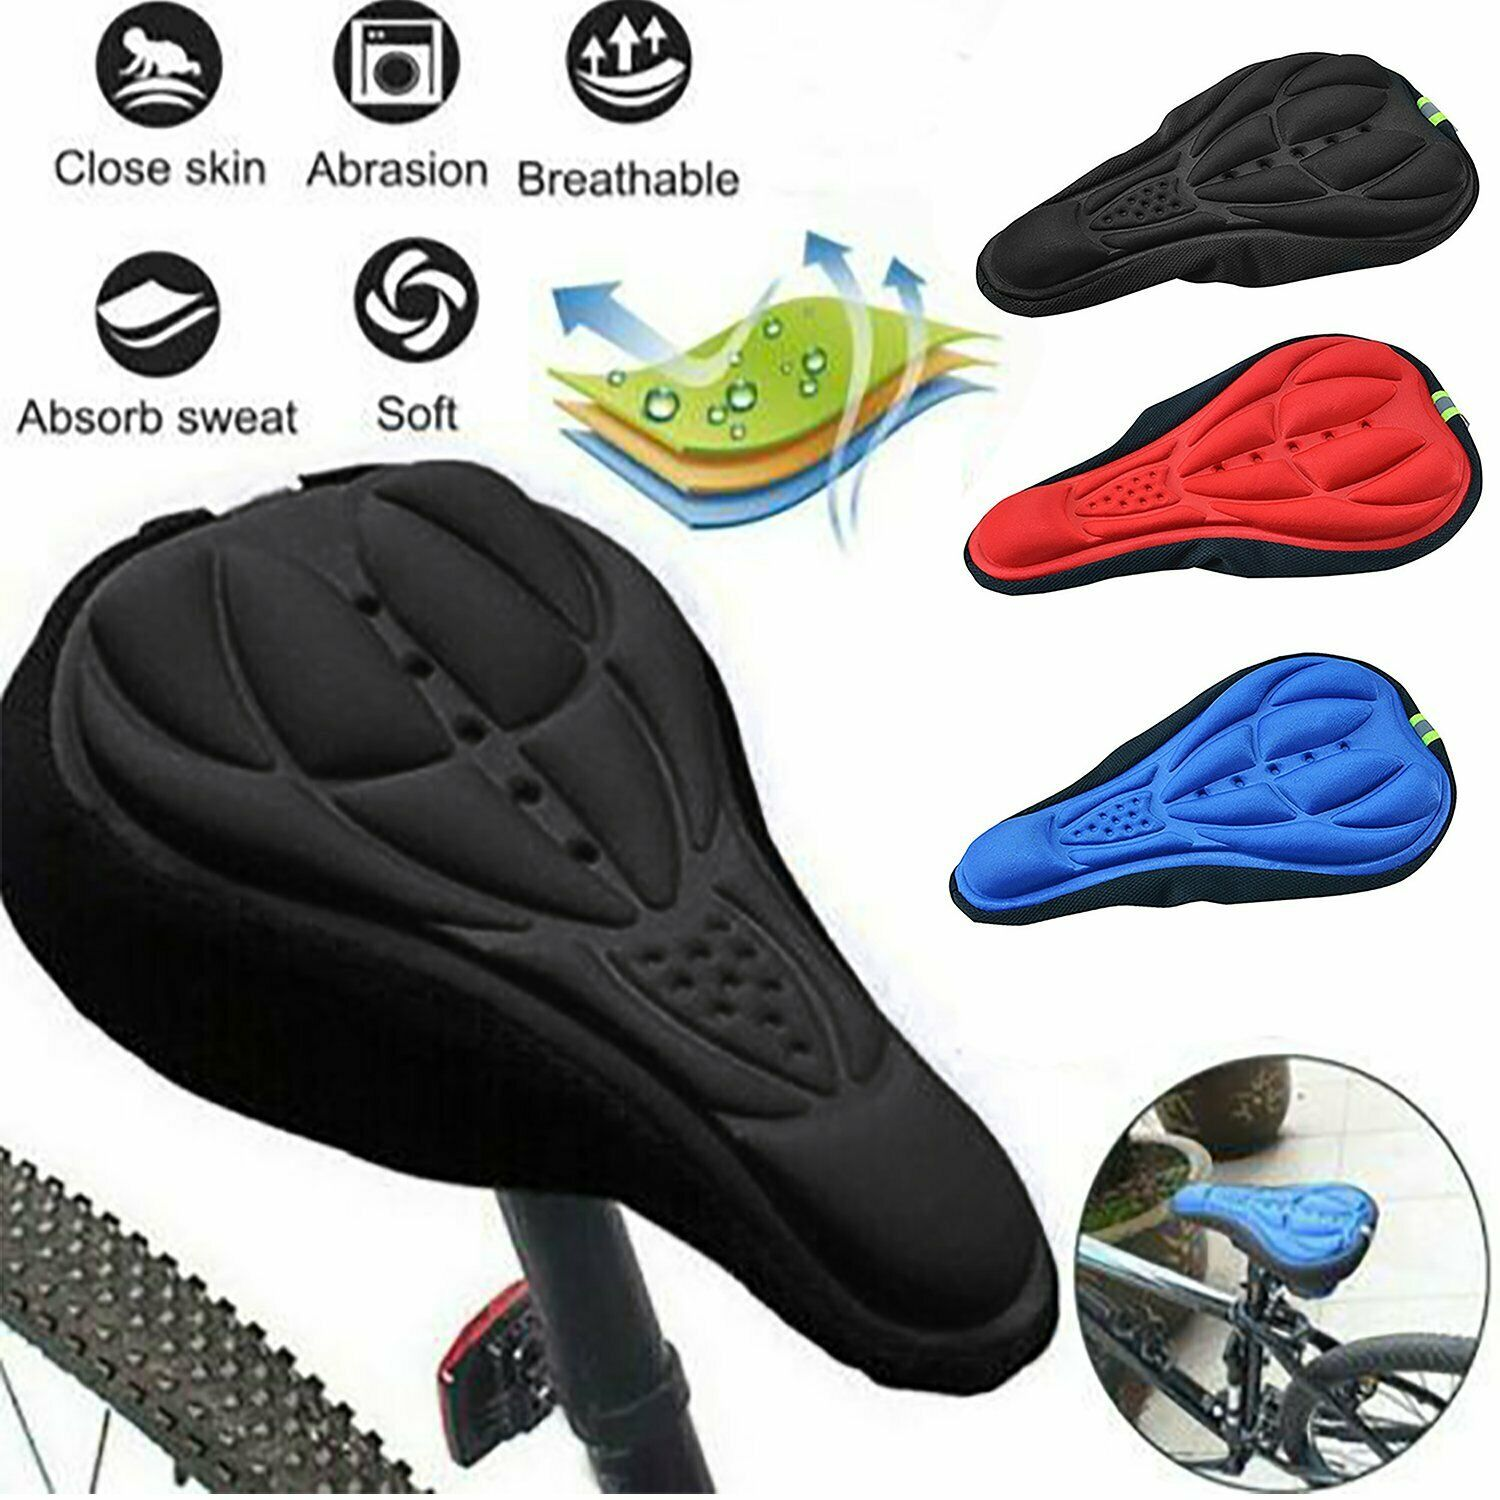 Details about  /Saddle Pad Cushion Cover Silicone Seat Extra Comfort For Mountain Bike Bicycle